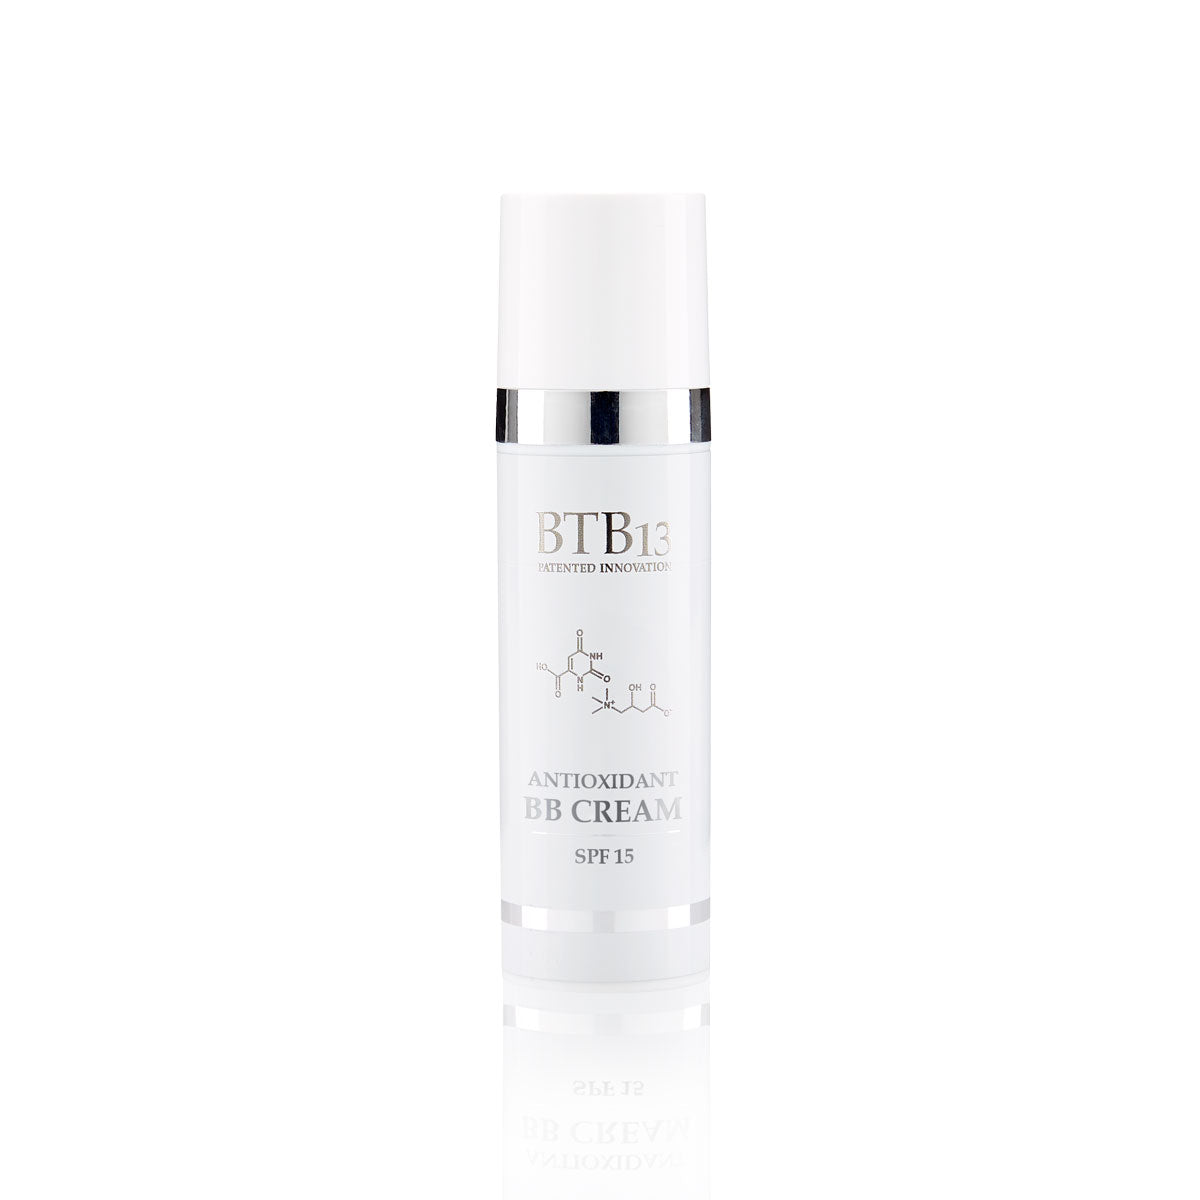 BTB13 Antioxidant BB-cream spf15